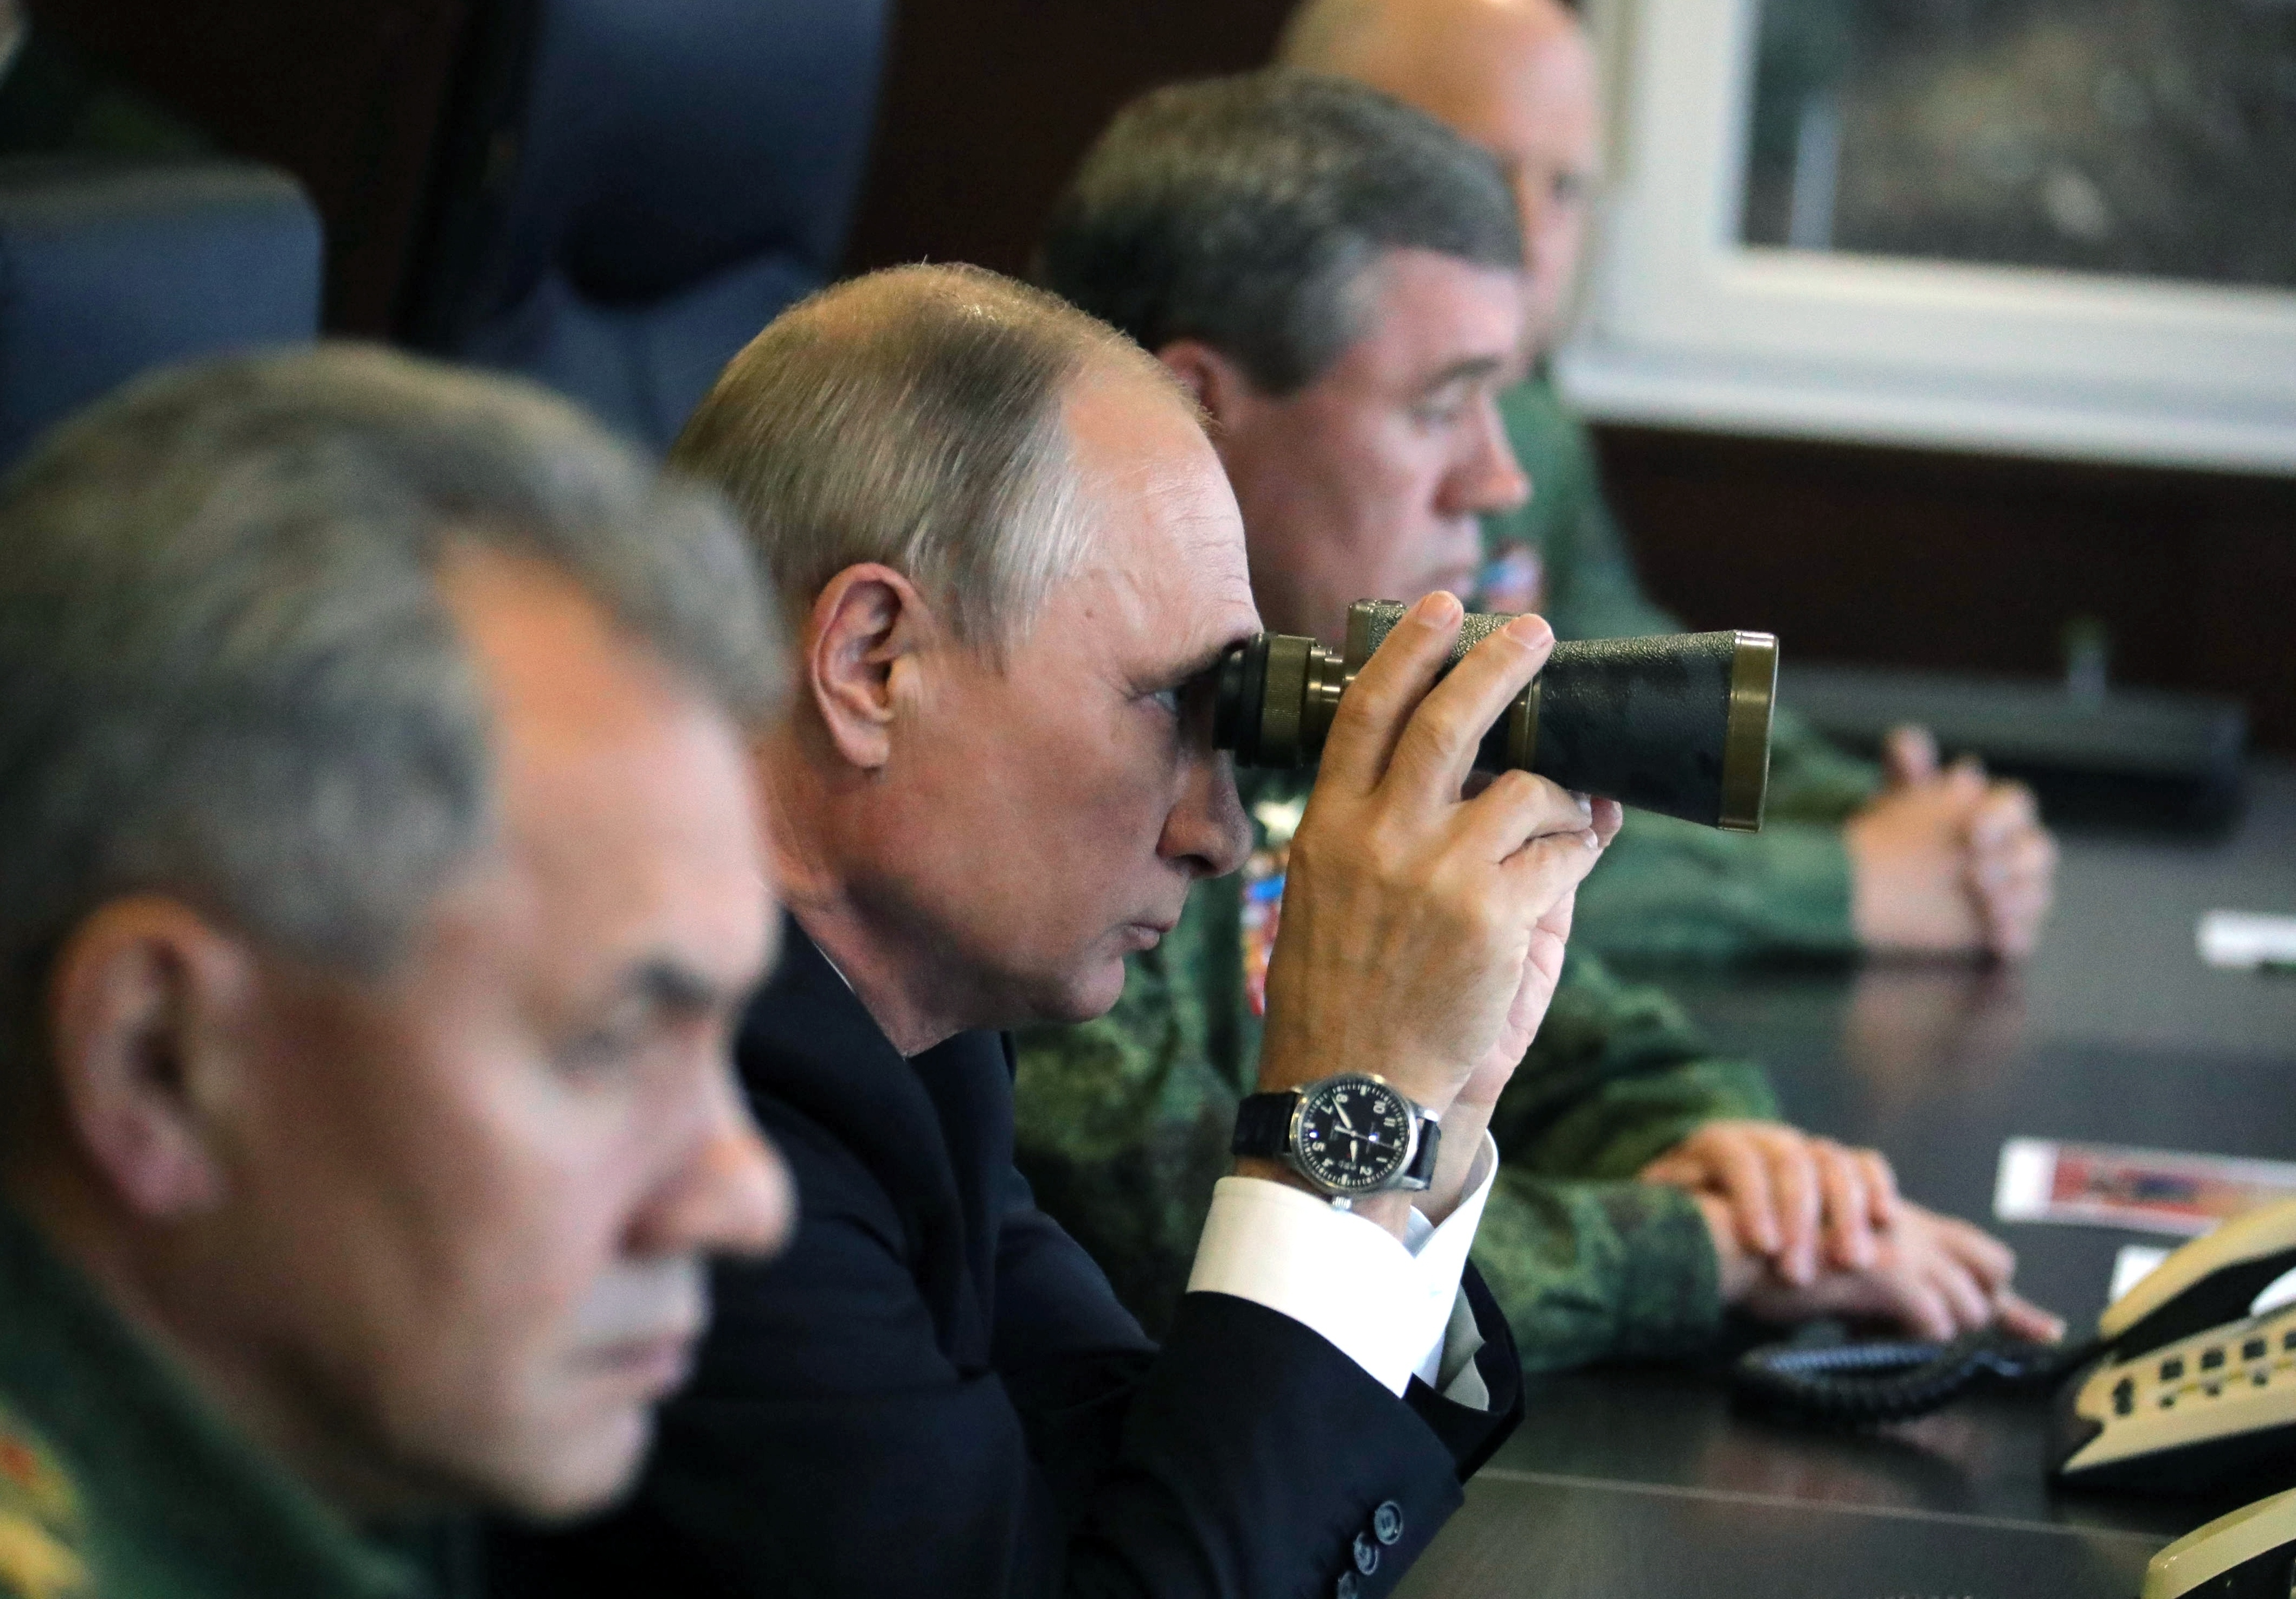 FILE - Russian President Vladimir Putin, center, Defense Minister Sergei Shoigu, left, and Chief of the General Staff of the Russian Armed Forces Valery Gerasimov, right, watch a military exercise at a training ground at the Luzhsky Range, near St. P...